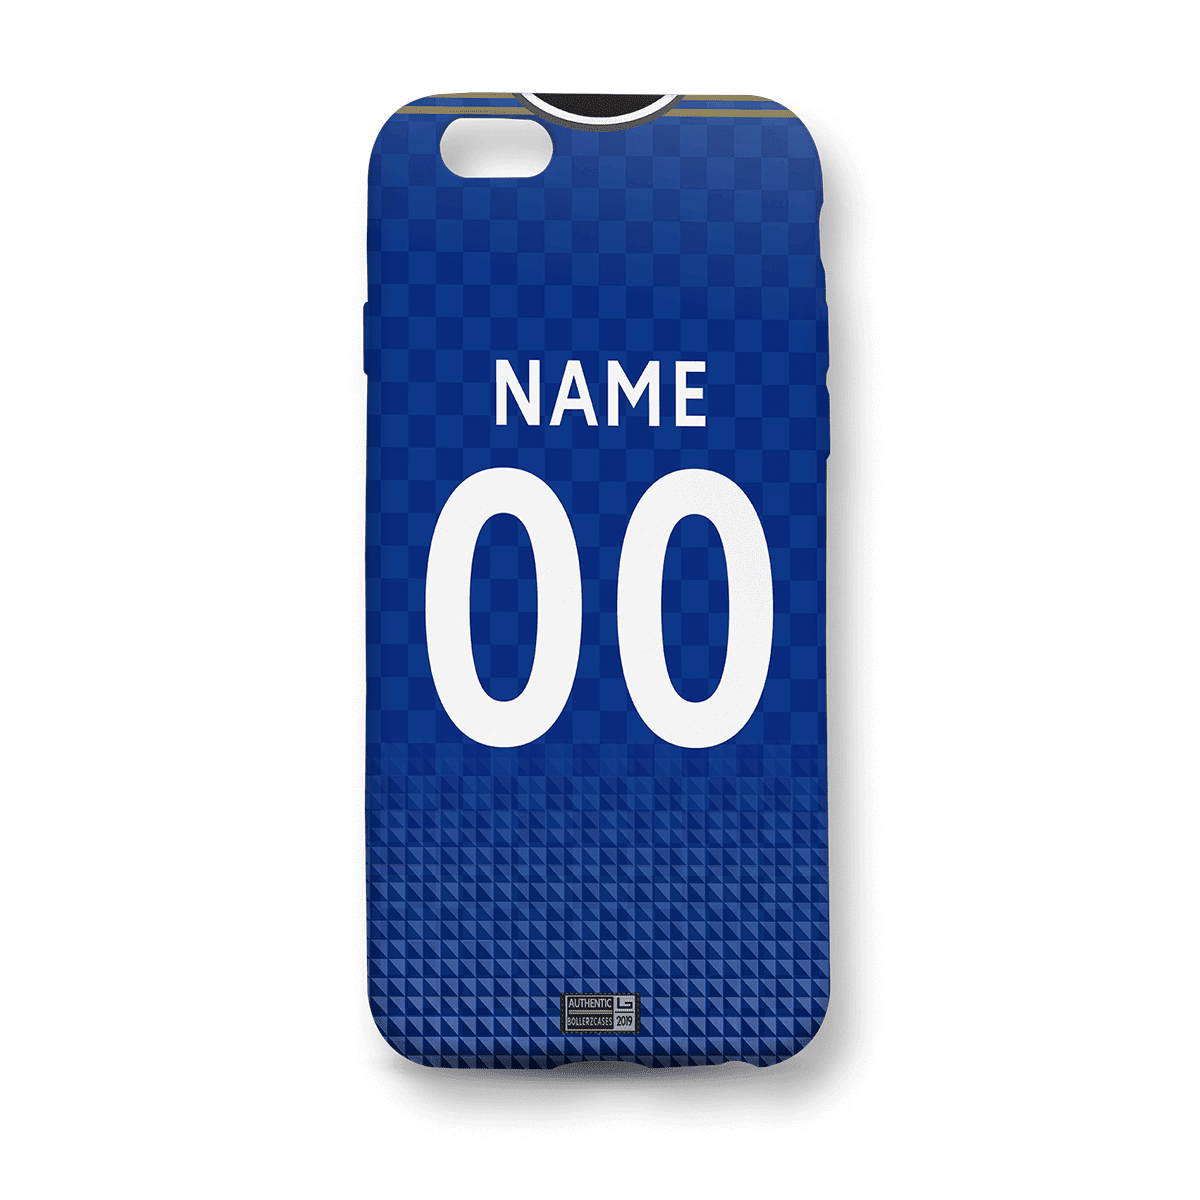 Leicester City 19-20 Home kit phone case